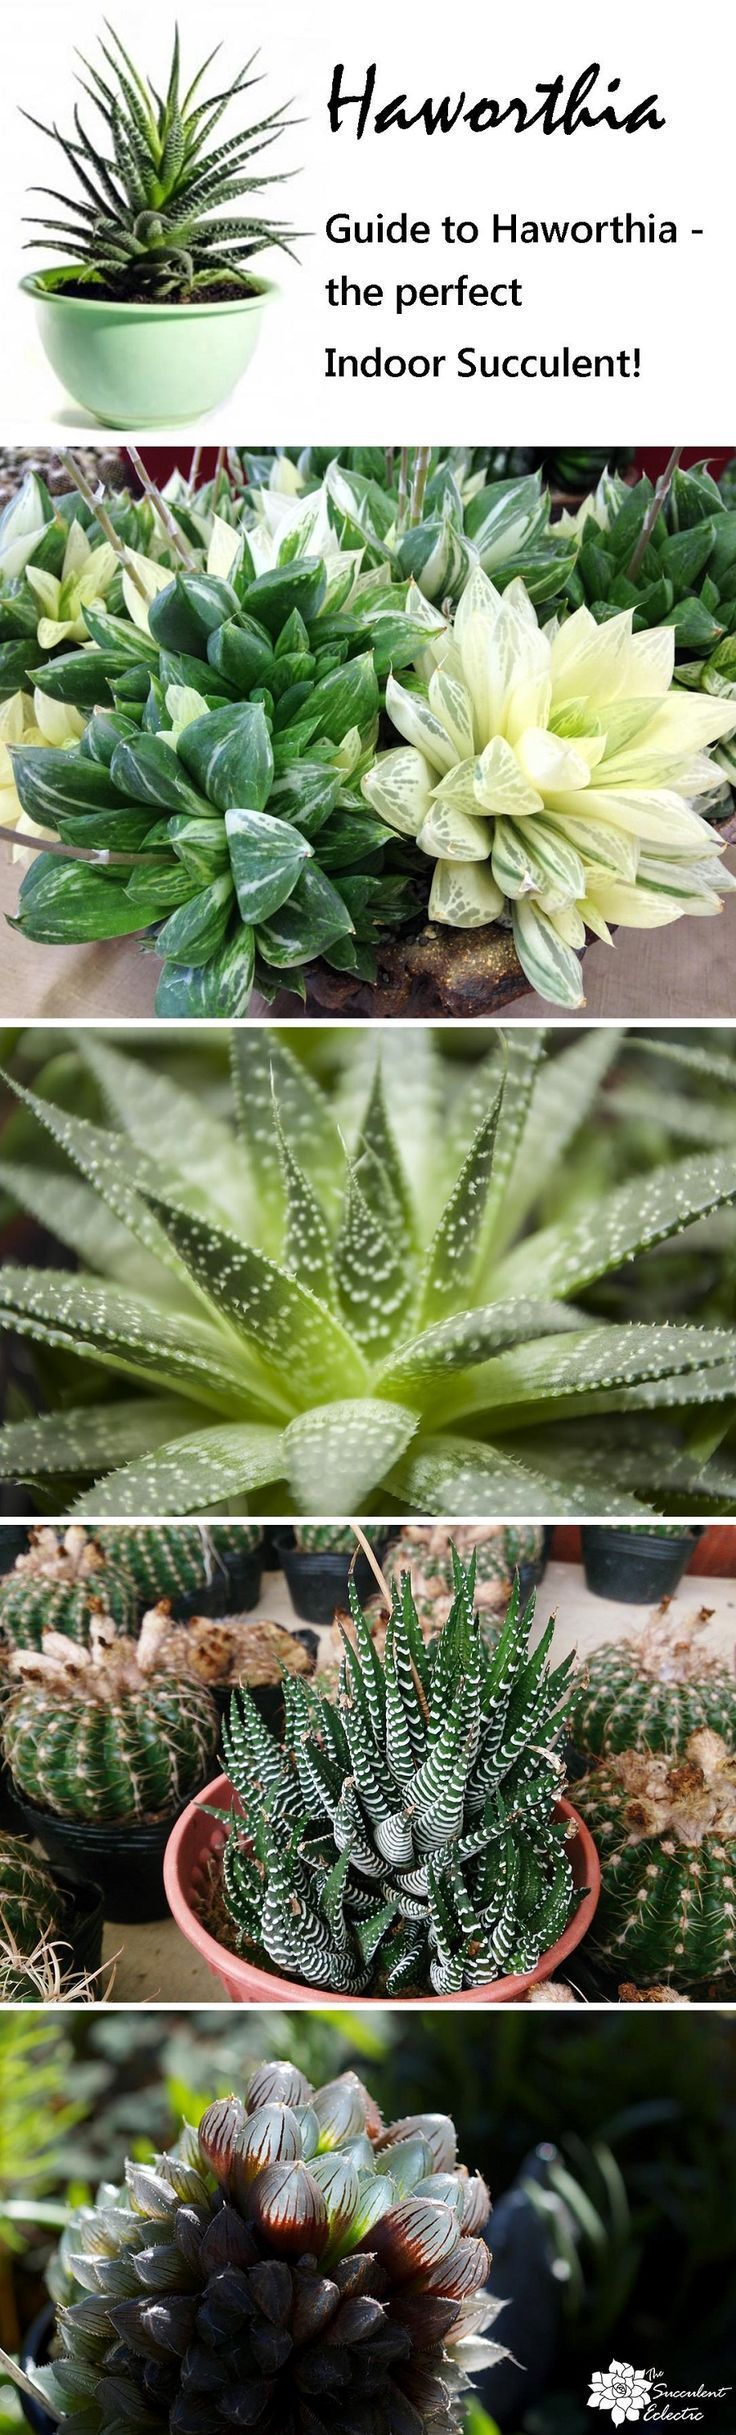 18 best turerium images on pinterest inside garden house plants